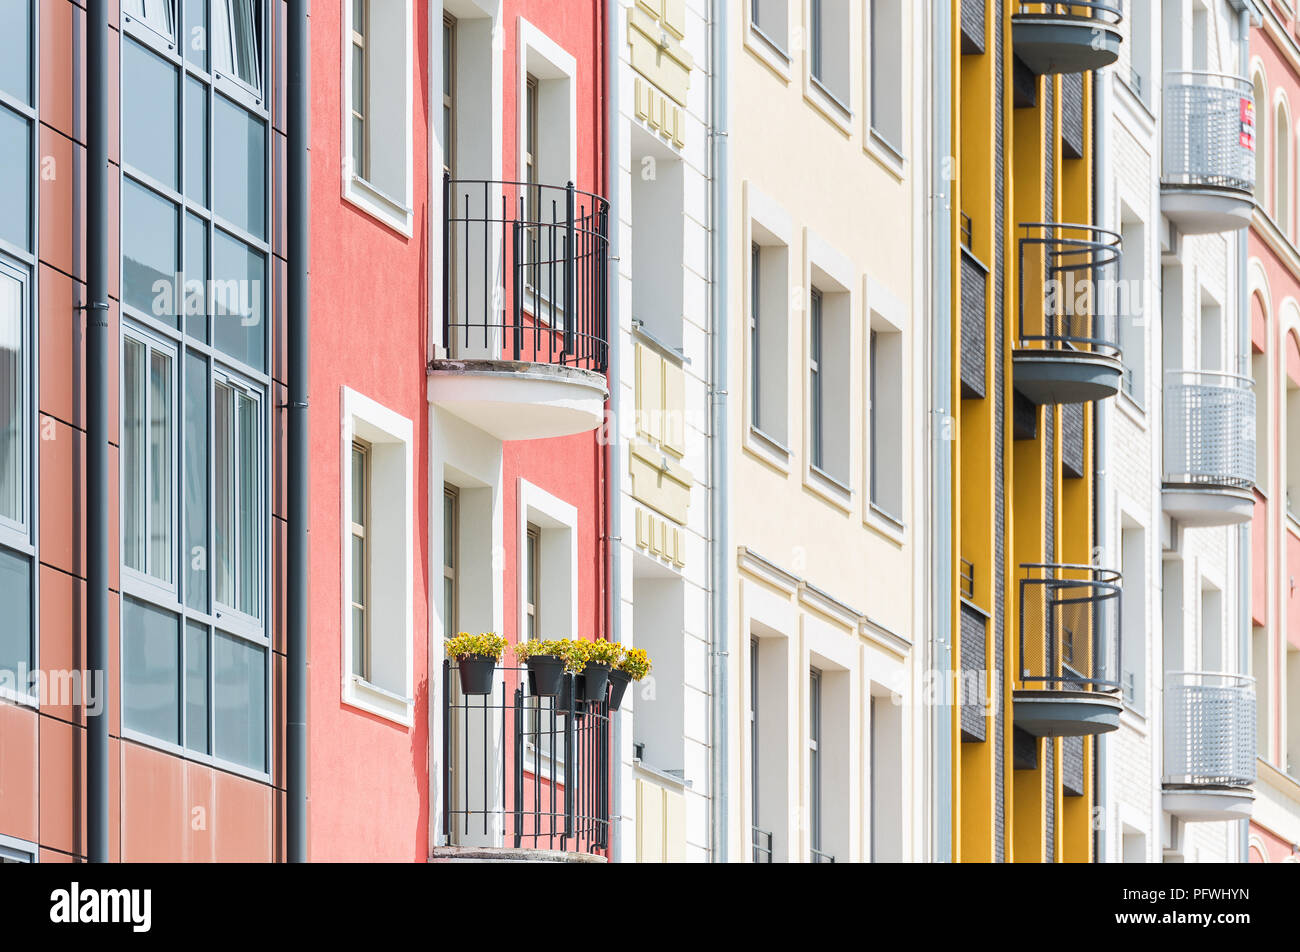 Beautiful old town apartments in the city of Elblag . - Stock Image